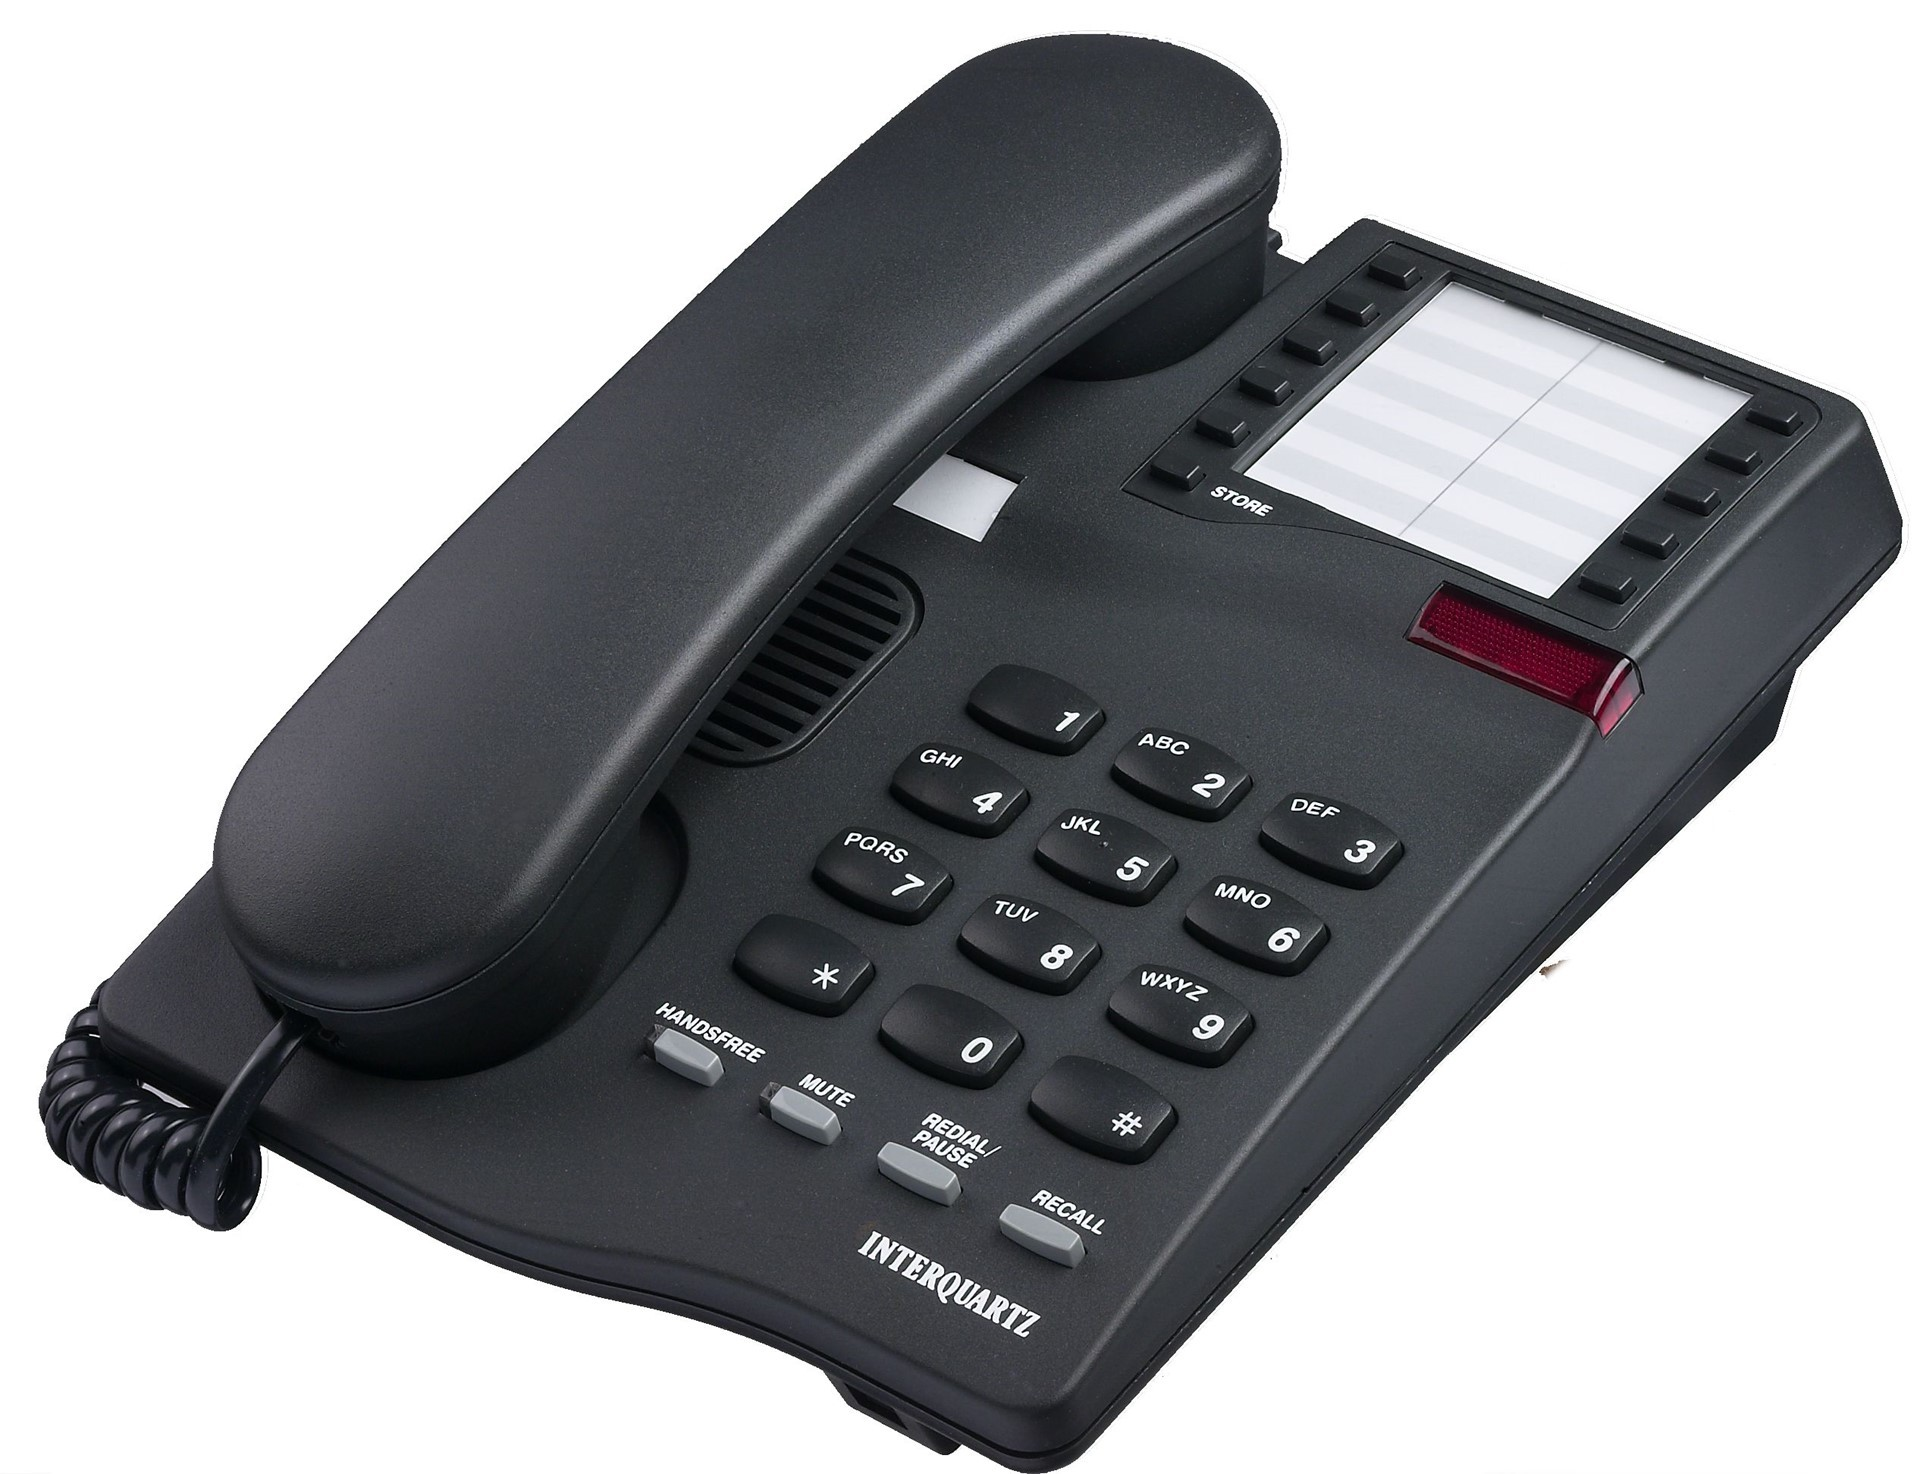 Interquartz Gemini Speakerphone 9333 Business Phone - Black